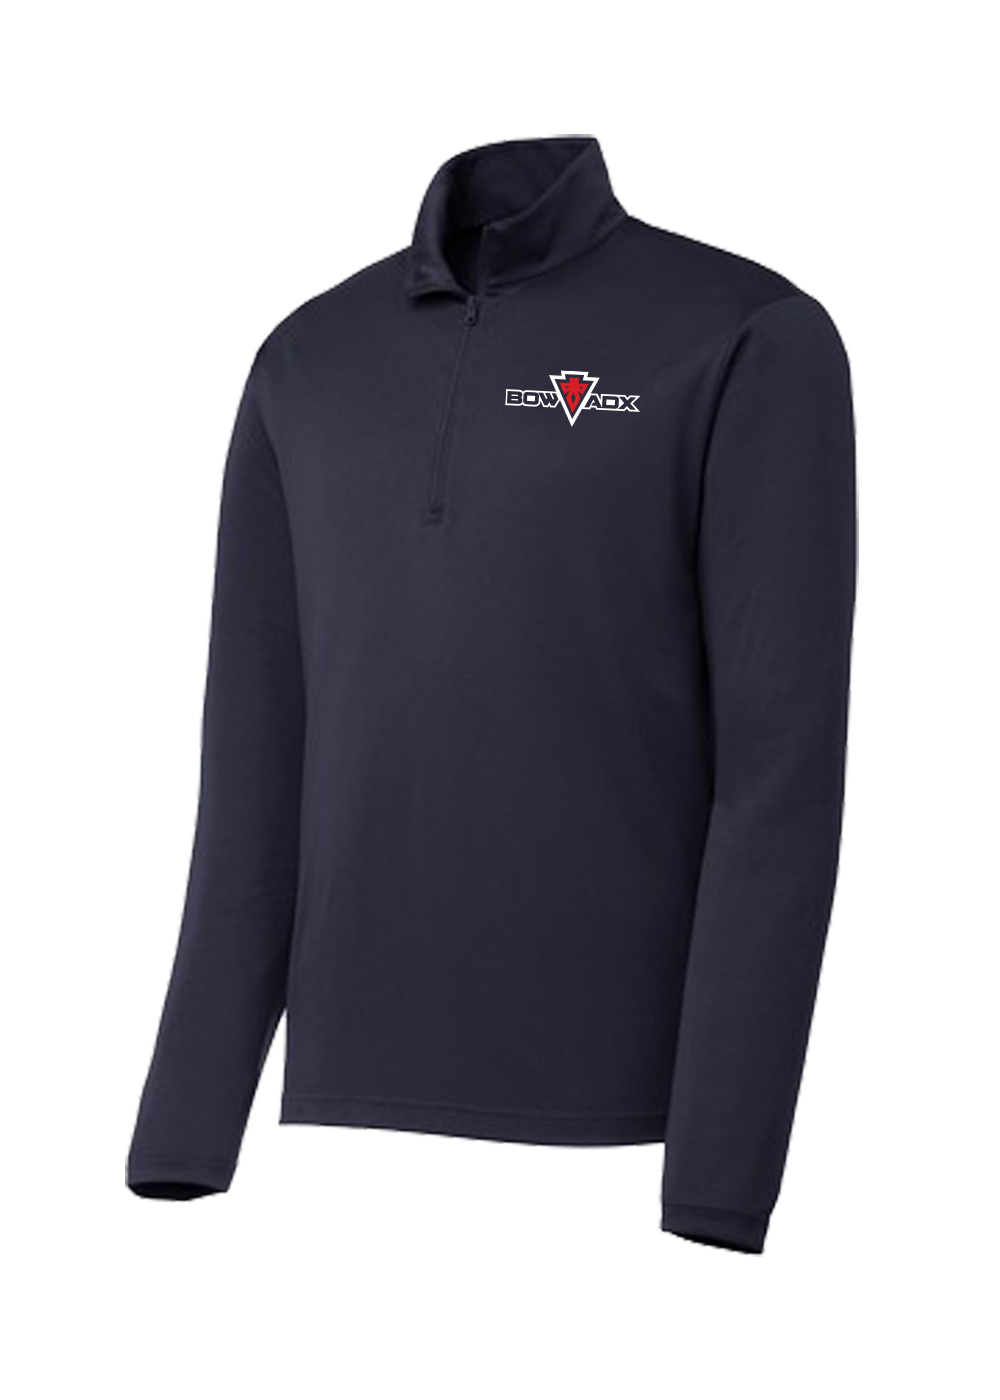 Click image for larger version.  Name:Quater-Zip-Navy-Mock.jpg Views:N/A Size:212.3 KB ID:6290115